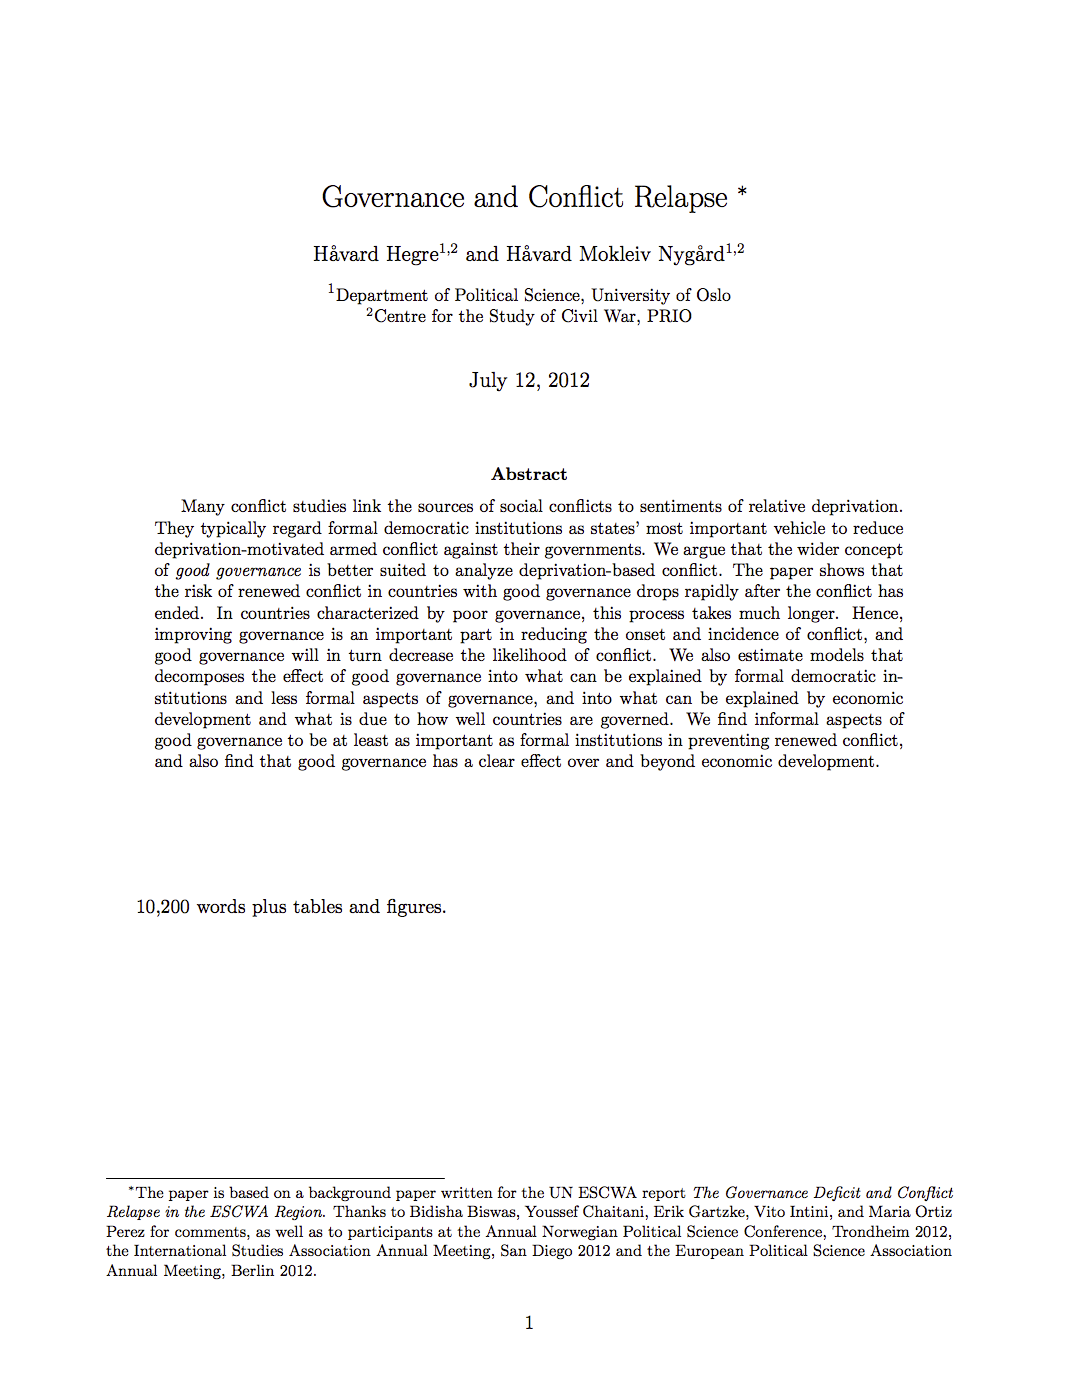 Governance and Conflict Relapse cover image